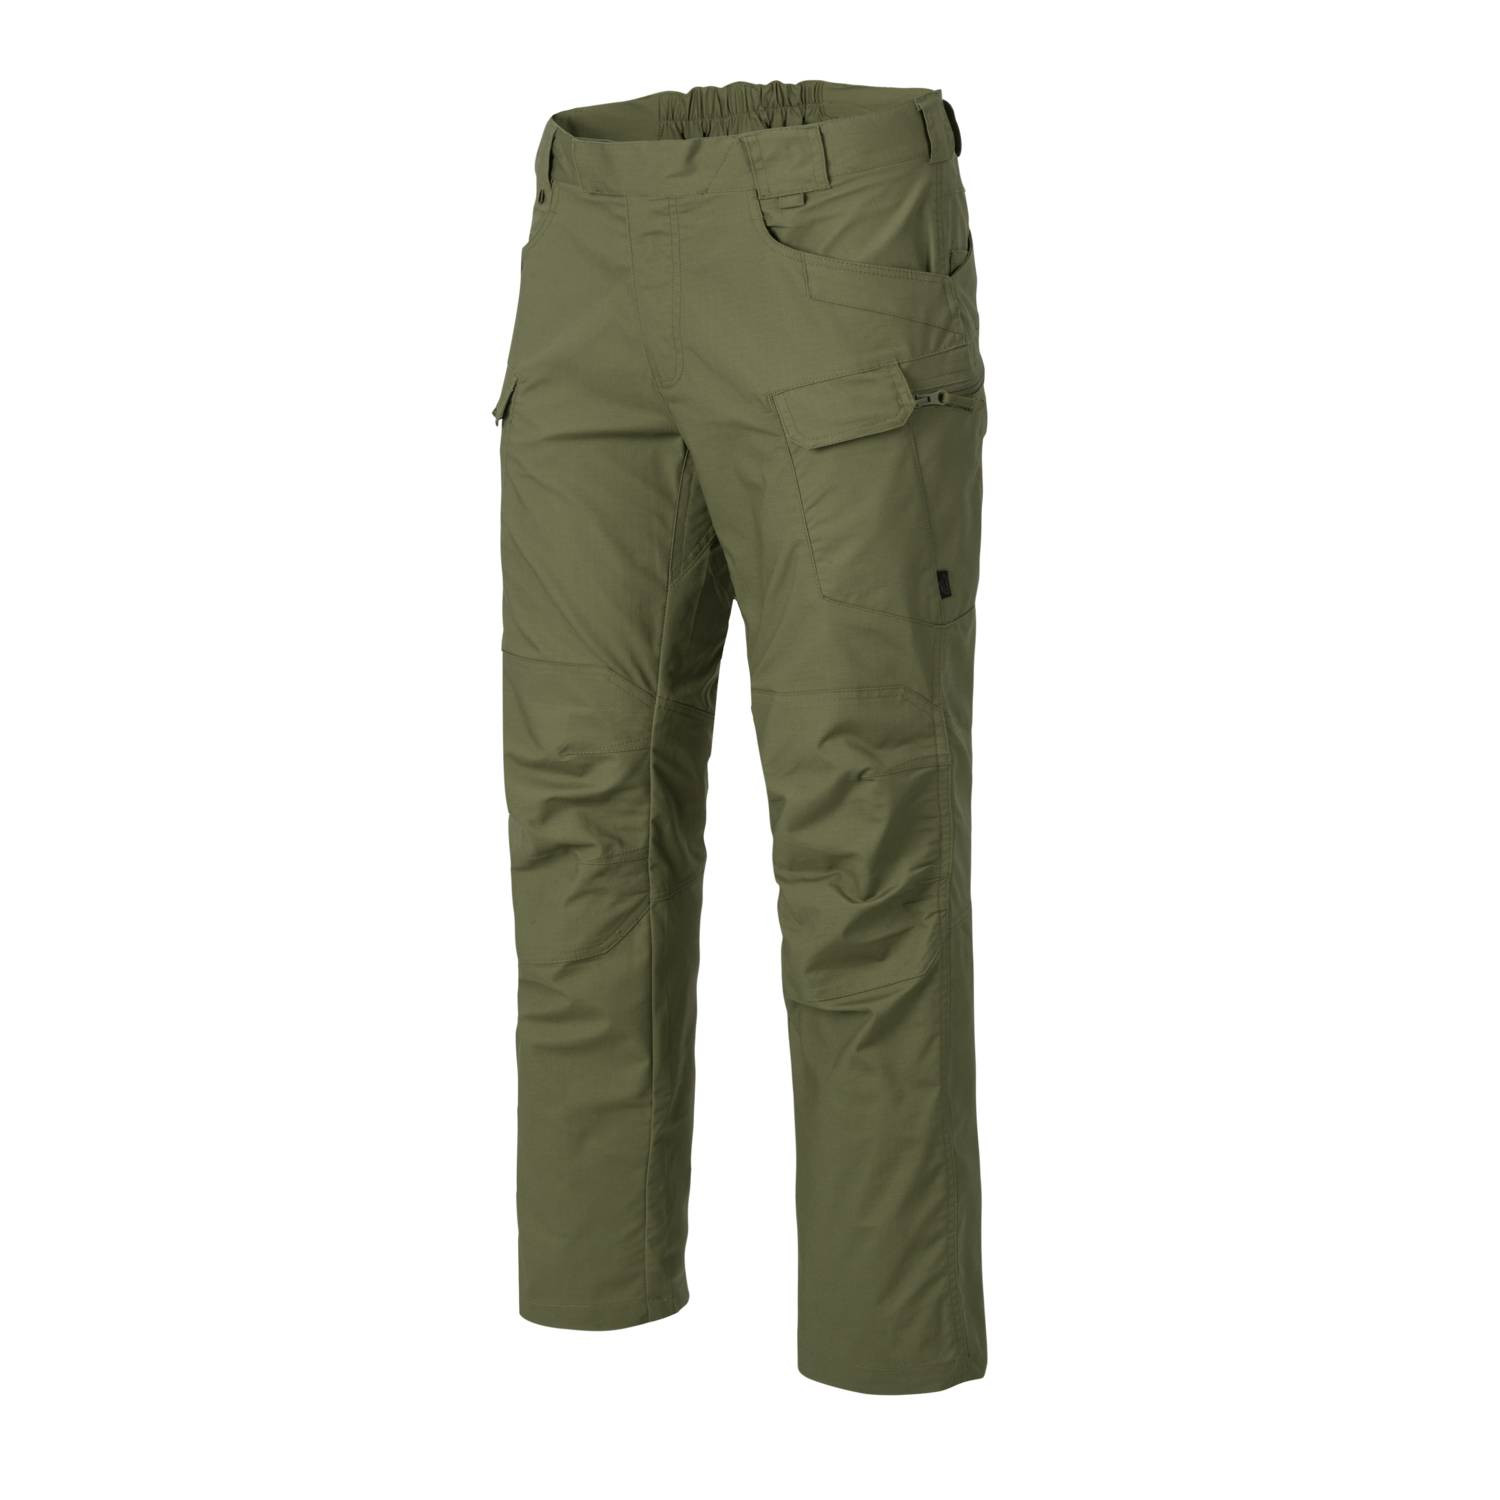 Nohavice URBAN TACTICAL OLIVE GREEN rip-stop